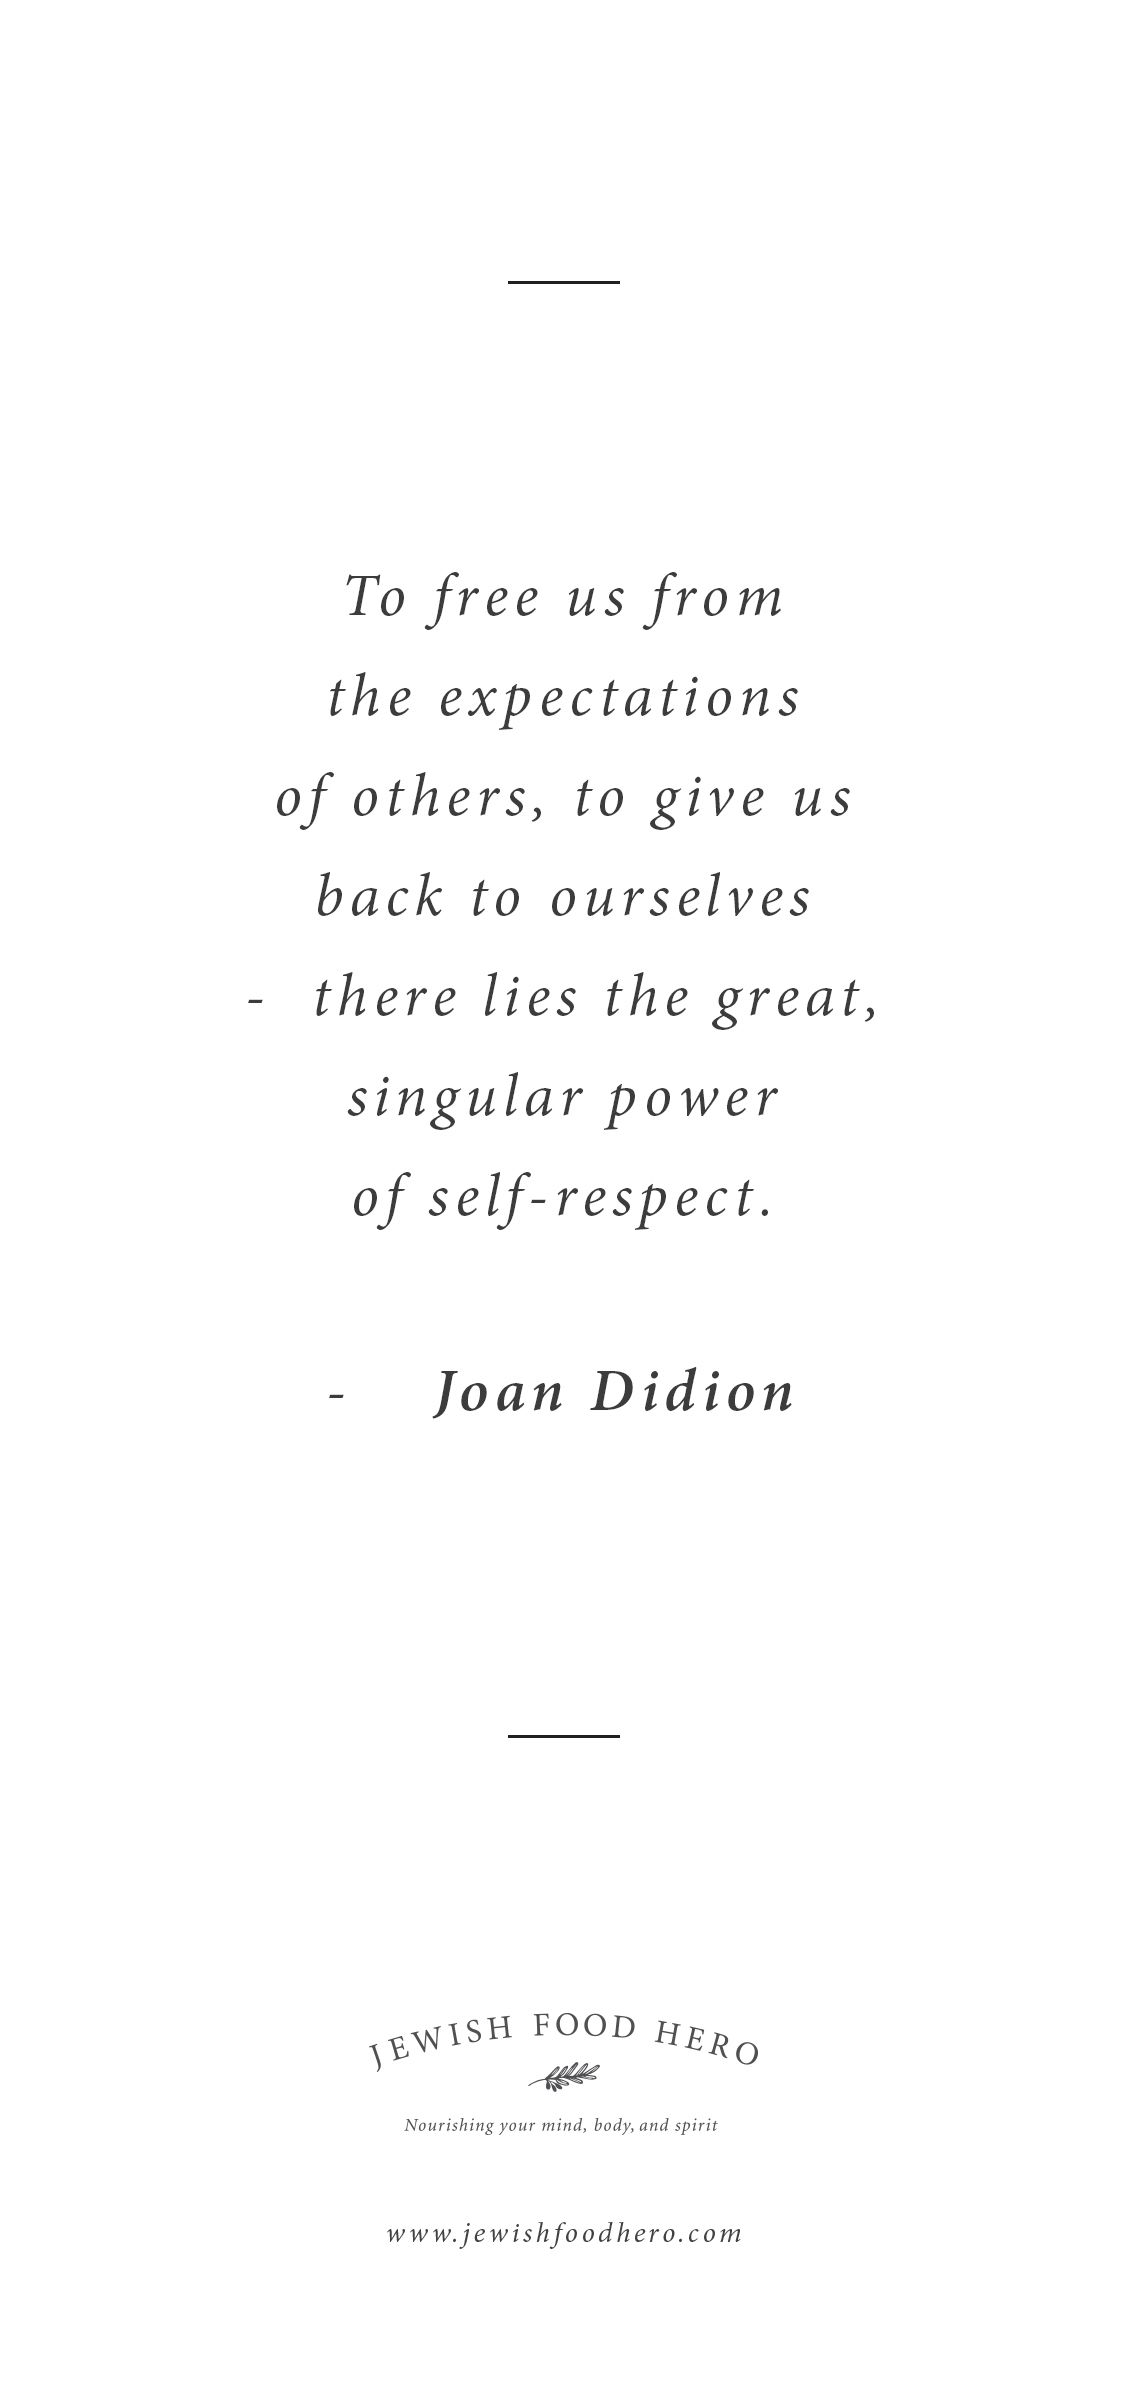 joan didion quotation pinteres  joan didion quotation more